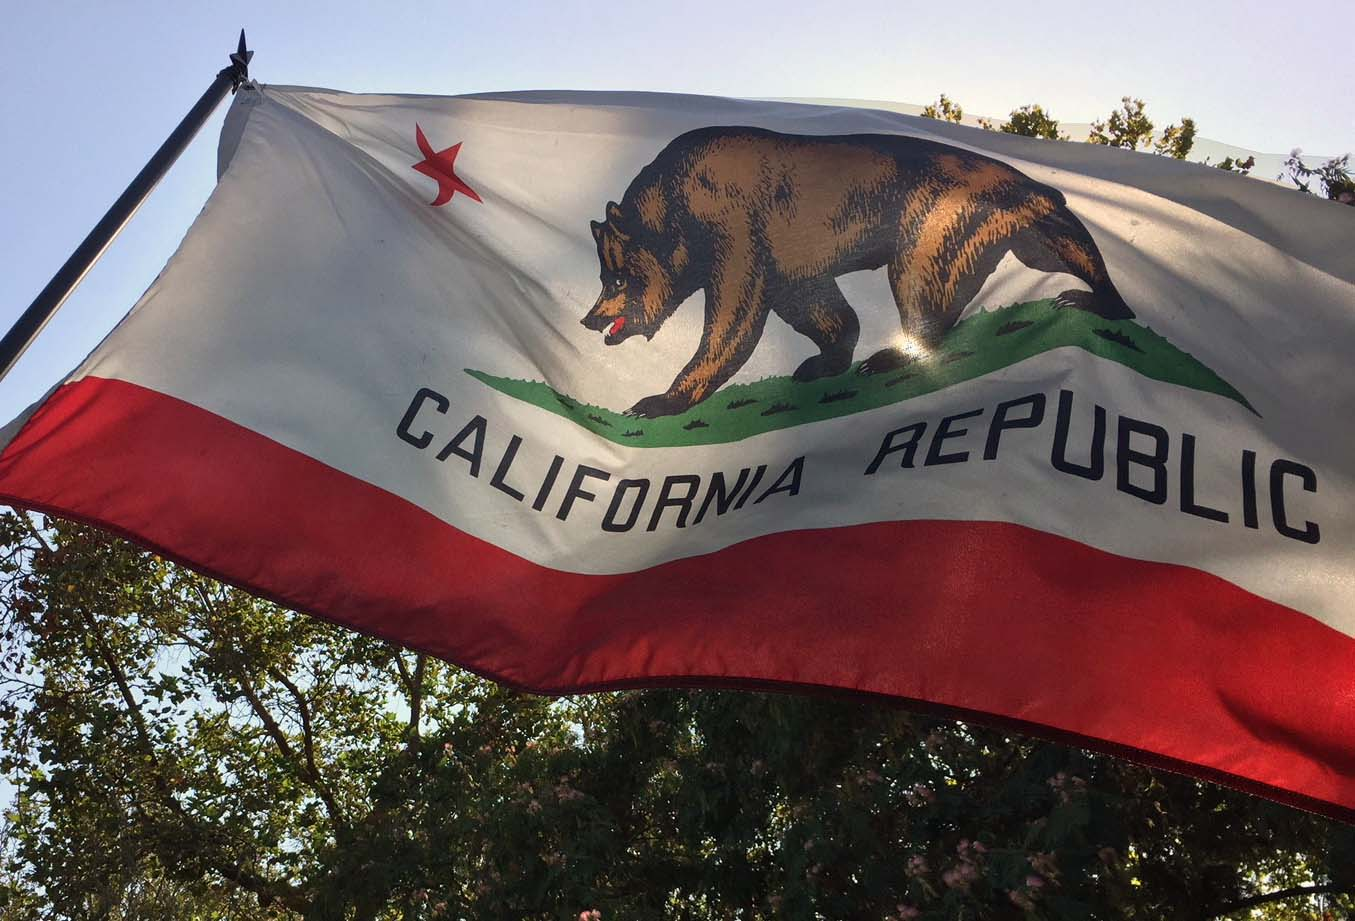 The history of the official flag of California dates to 1846, when California was still a territory of Mexico. A group of settlers took over the Mexican garrison at Sonoma, where they raised the hastily designed flag featuring a grizzly bear and lone star. California was declared a state four years later, but the flag was not adopted by the State Legislature until 1911.